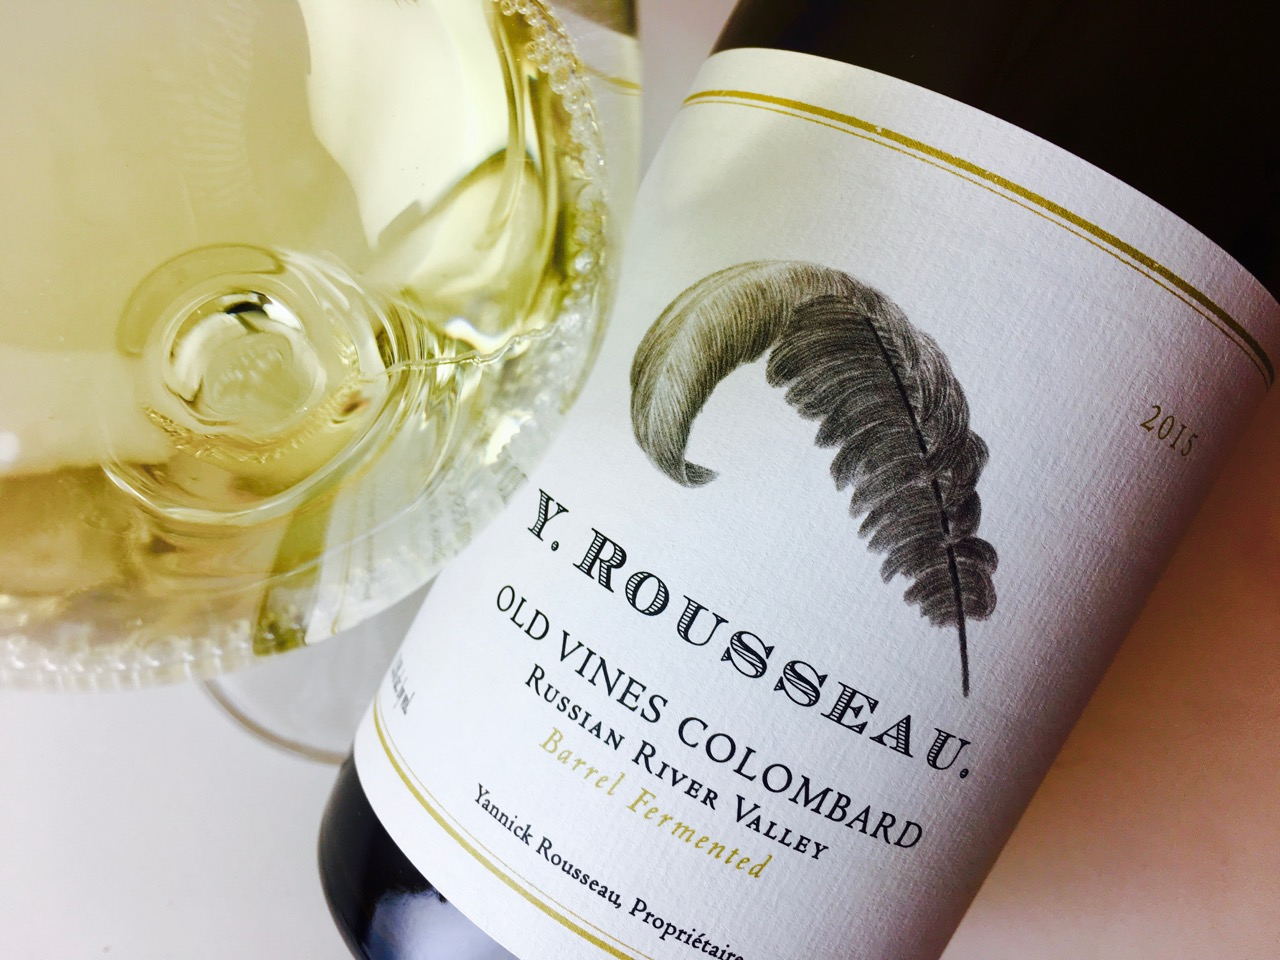 2015 Y. Rousseau Old Vines Colombard Russian River Valley, Sonoma County